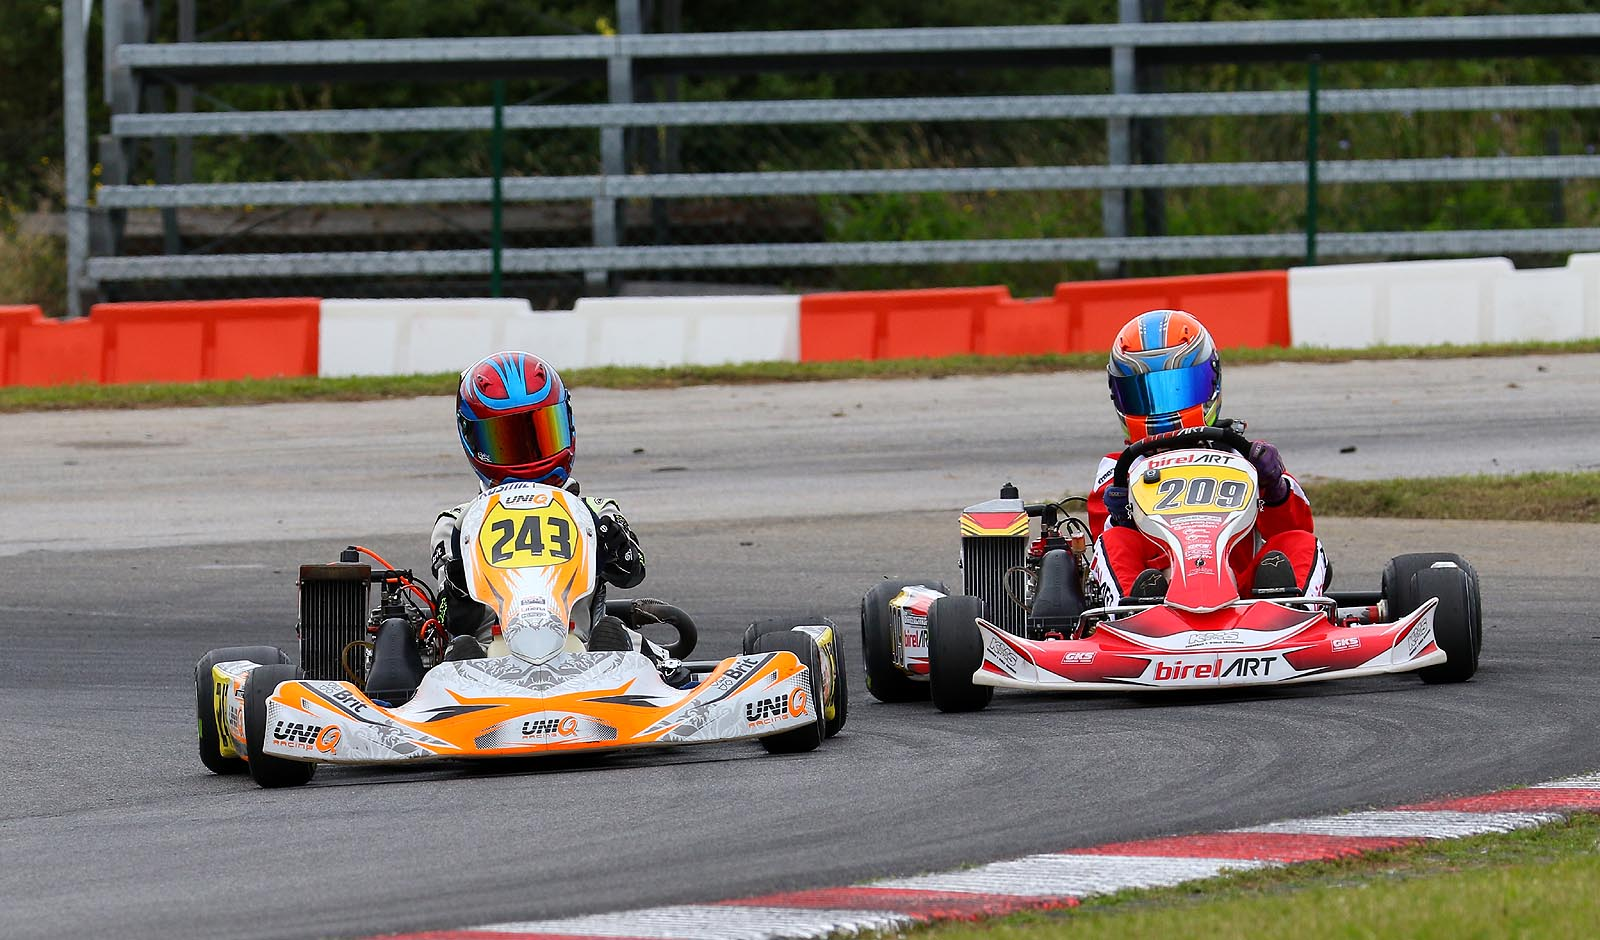 Junior Max Eurofinale